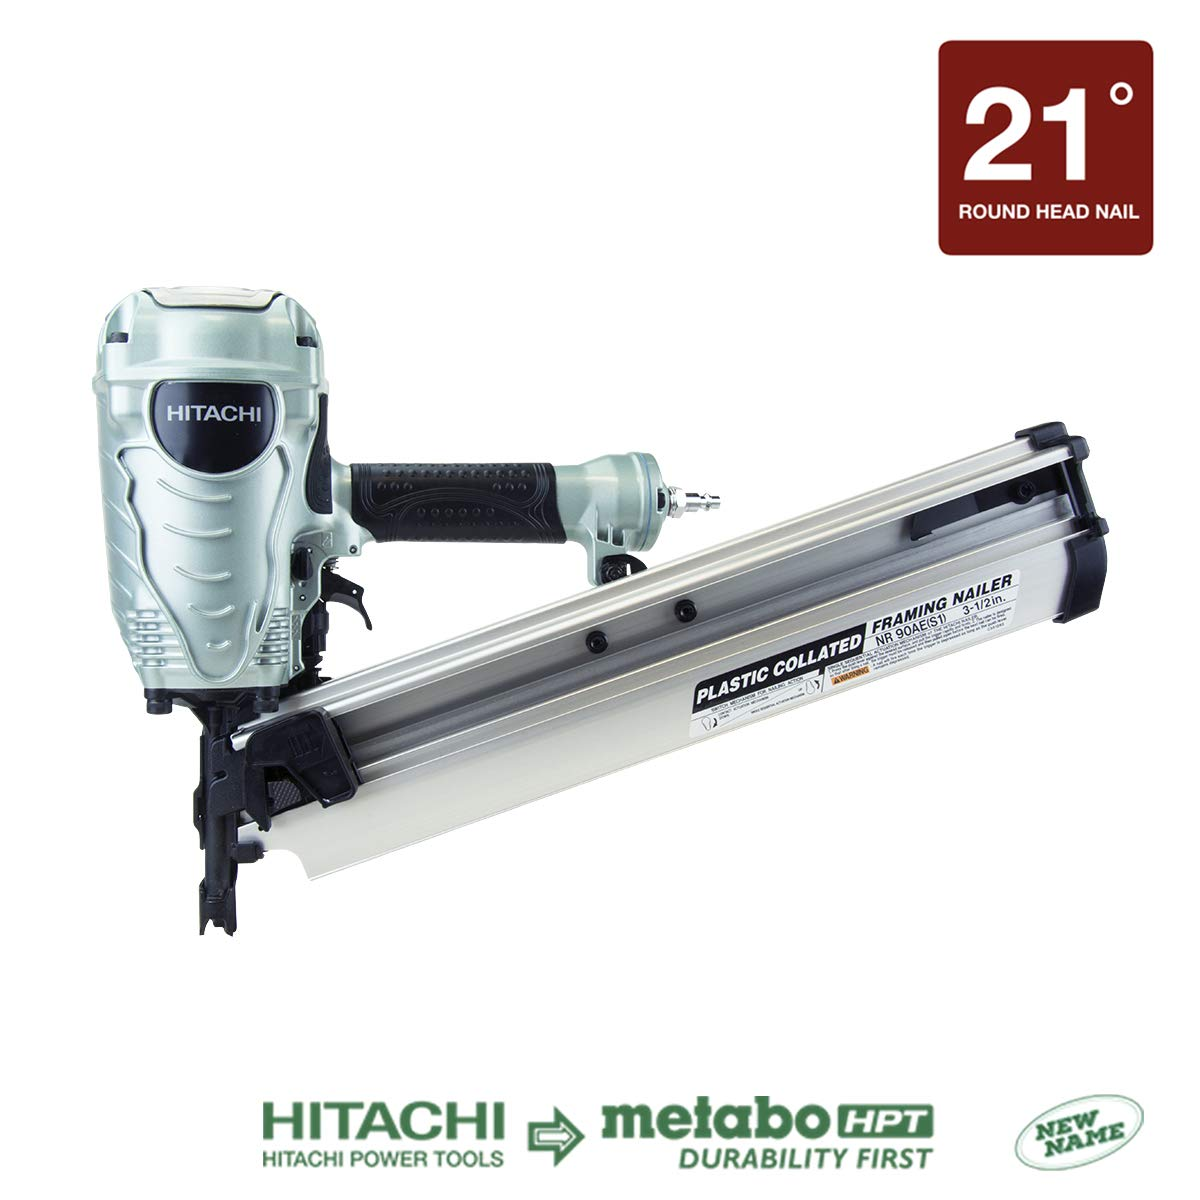 Hitachi NR90AES1 Framing Nailer, 2-Inch to 3-1 2-Inch Plastic Collated Full Head Nails, 21 Degree Pneumatic, Selective Actuation Switch, 5-Year Warranty Discontinued by the Manufacturer